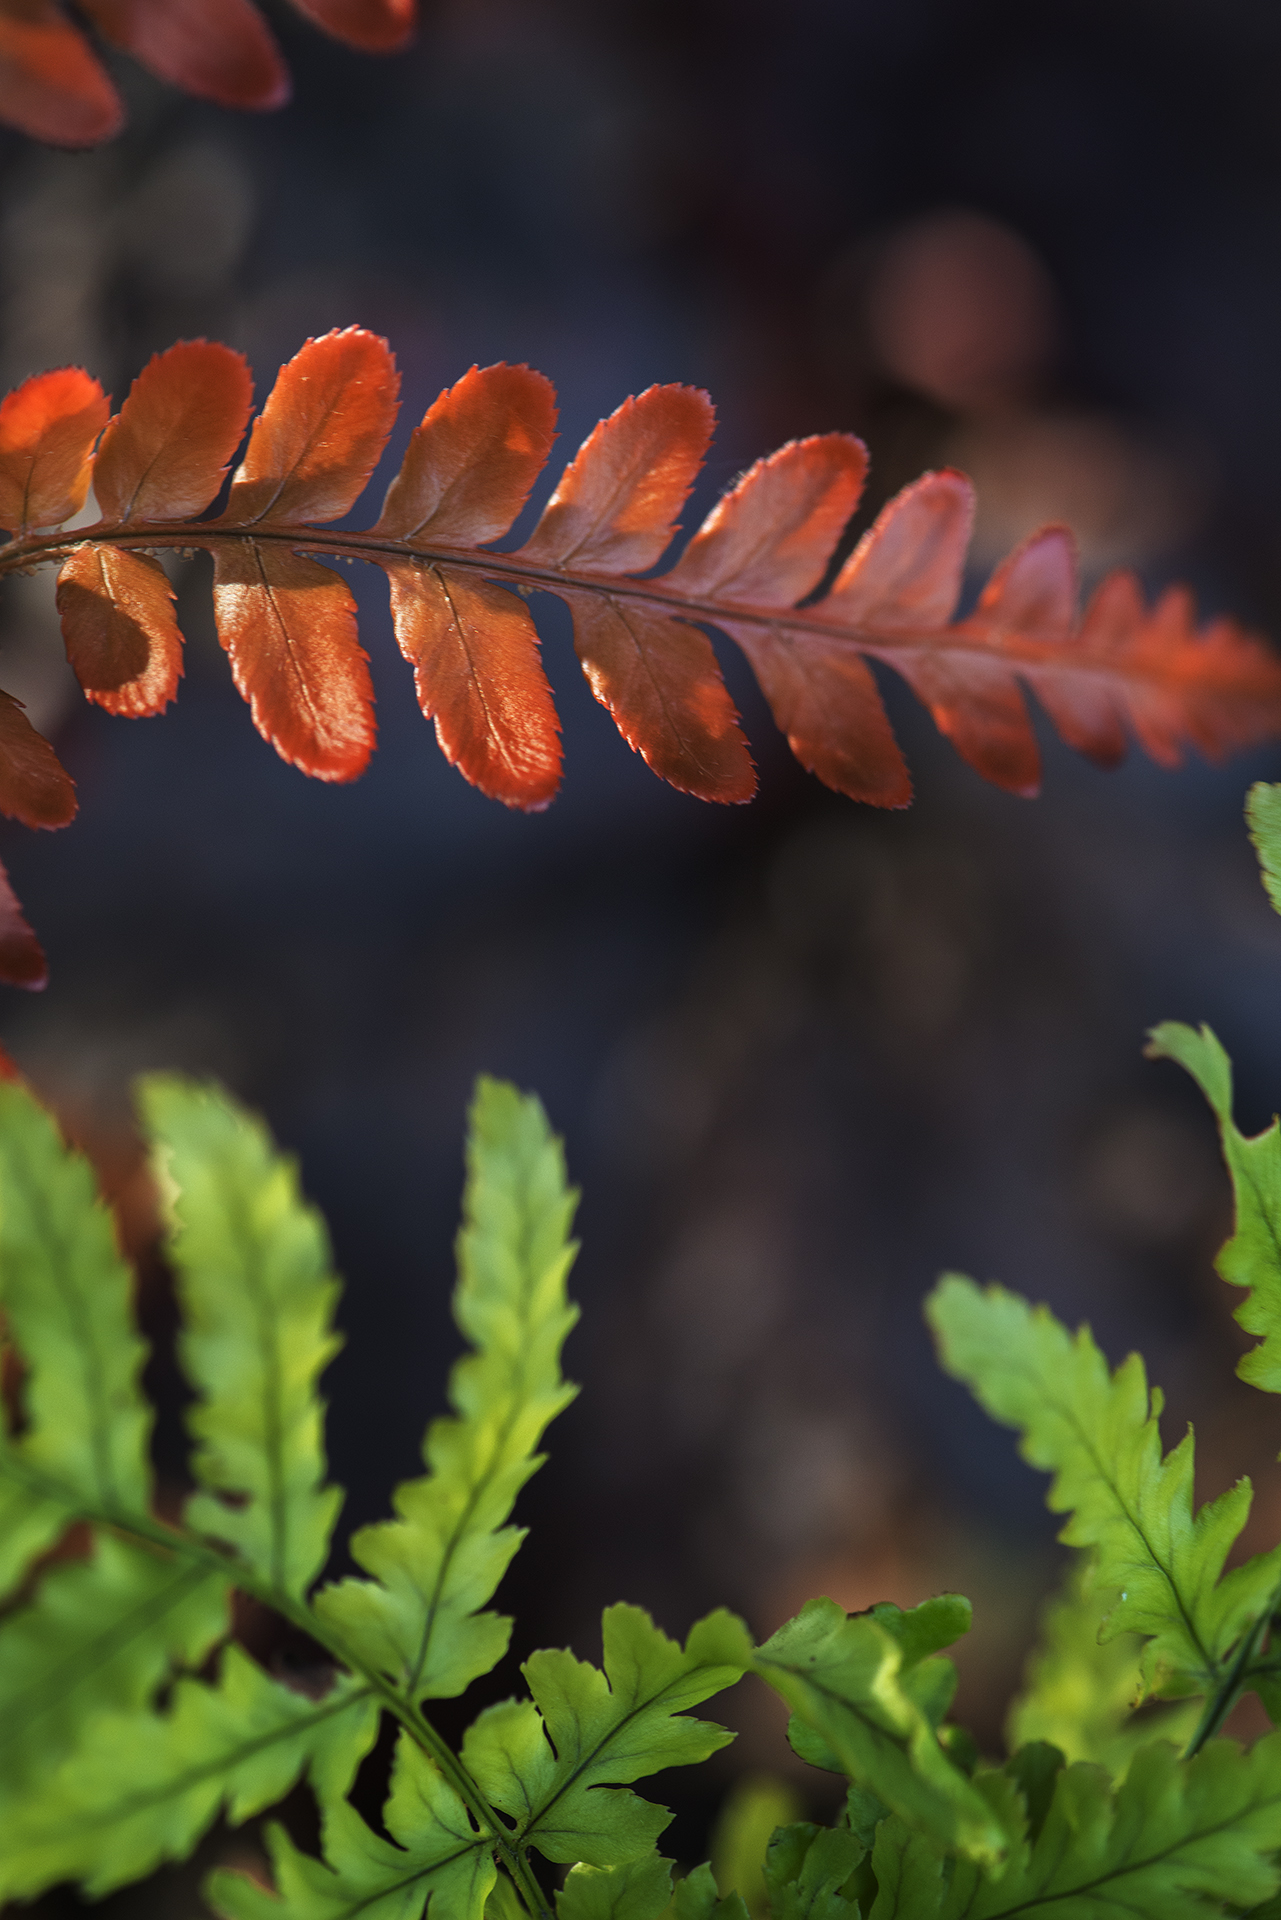 Dryopteris erythrosora 'Brilliance' (Autumn Fern)